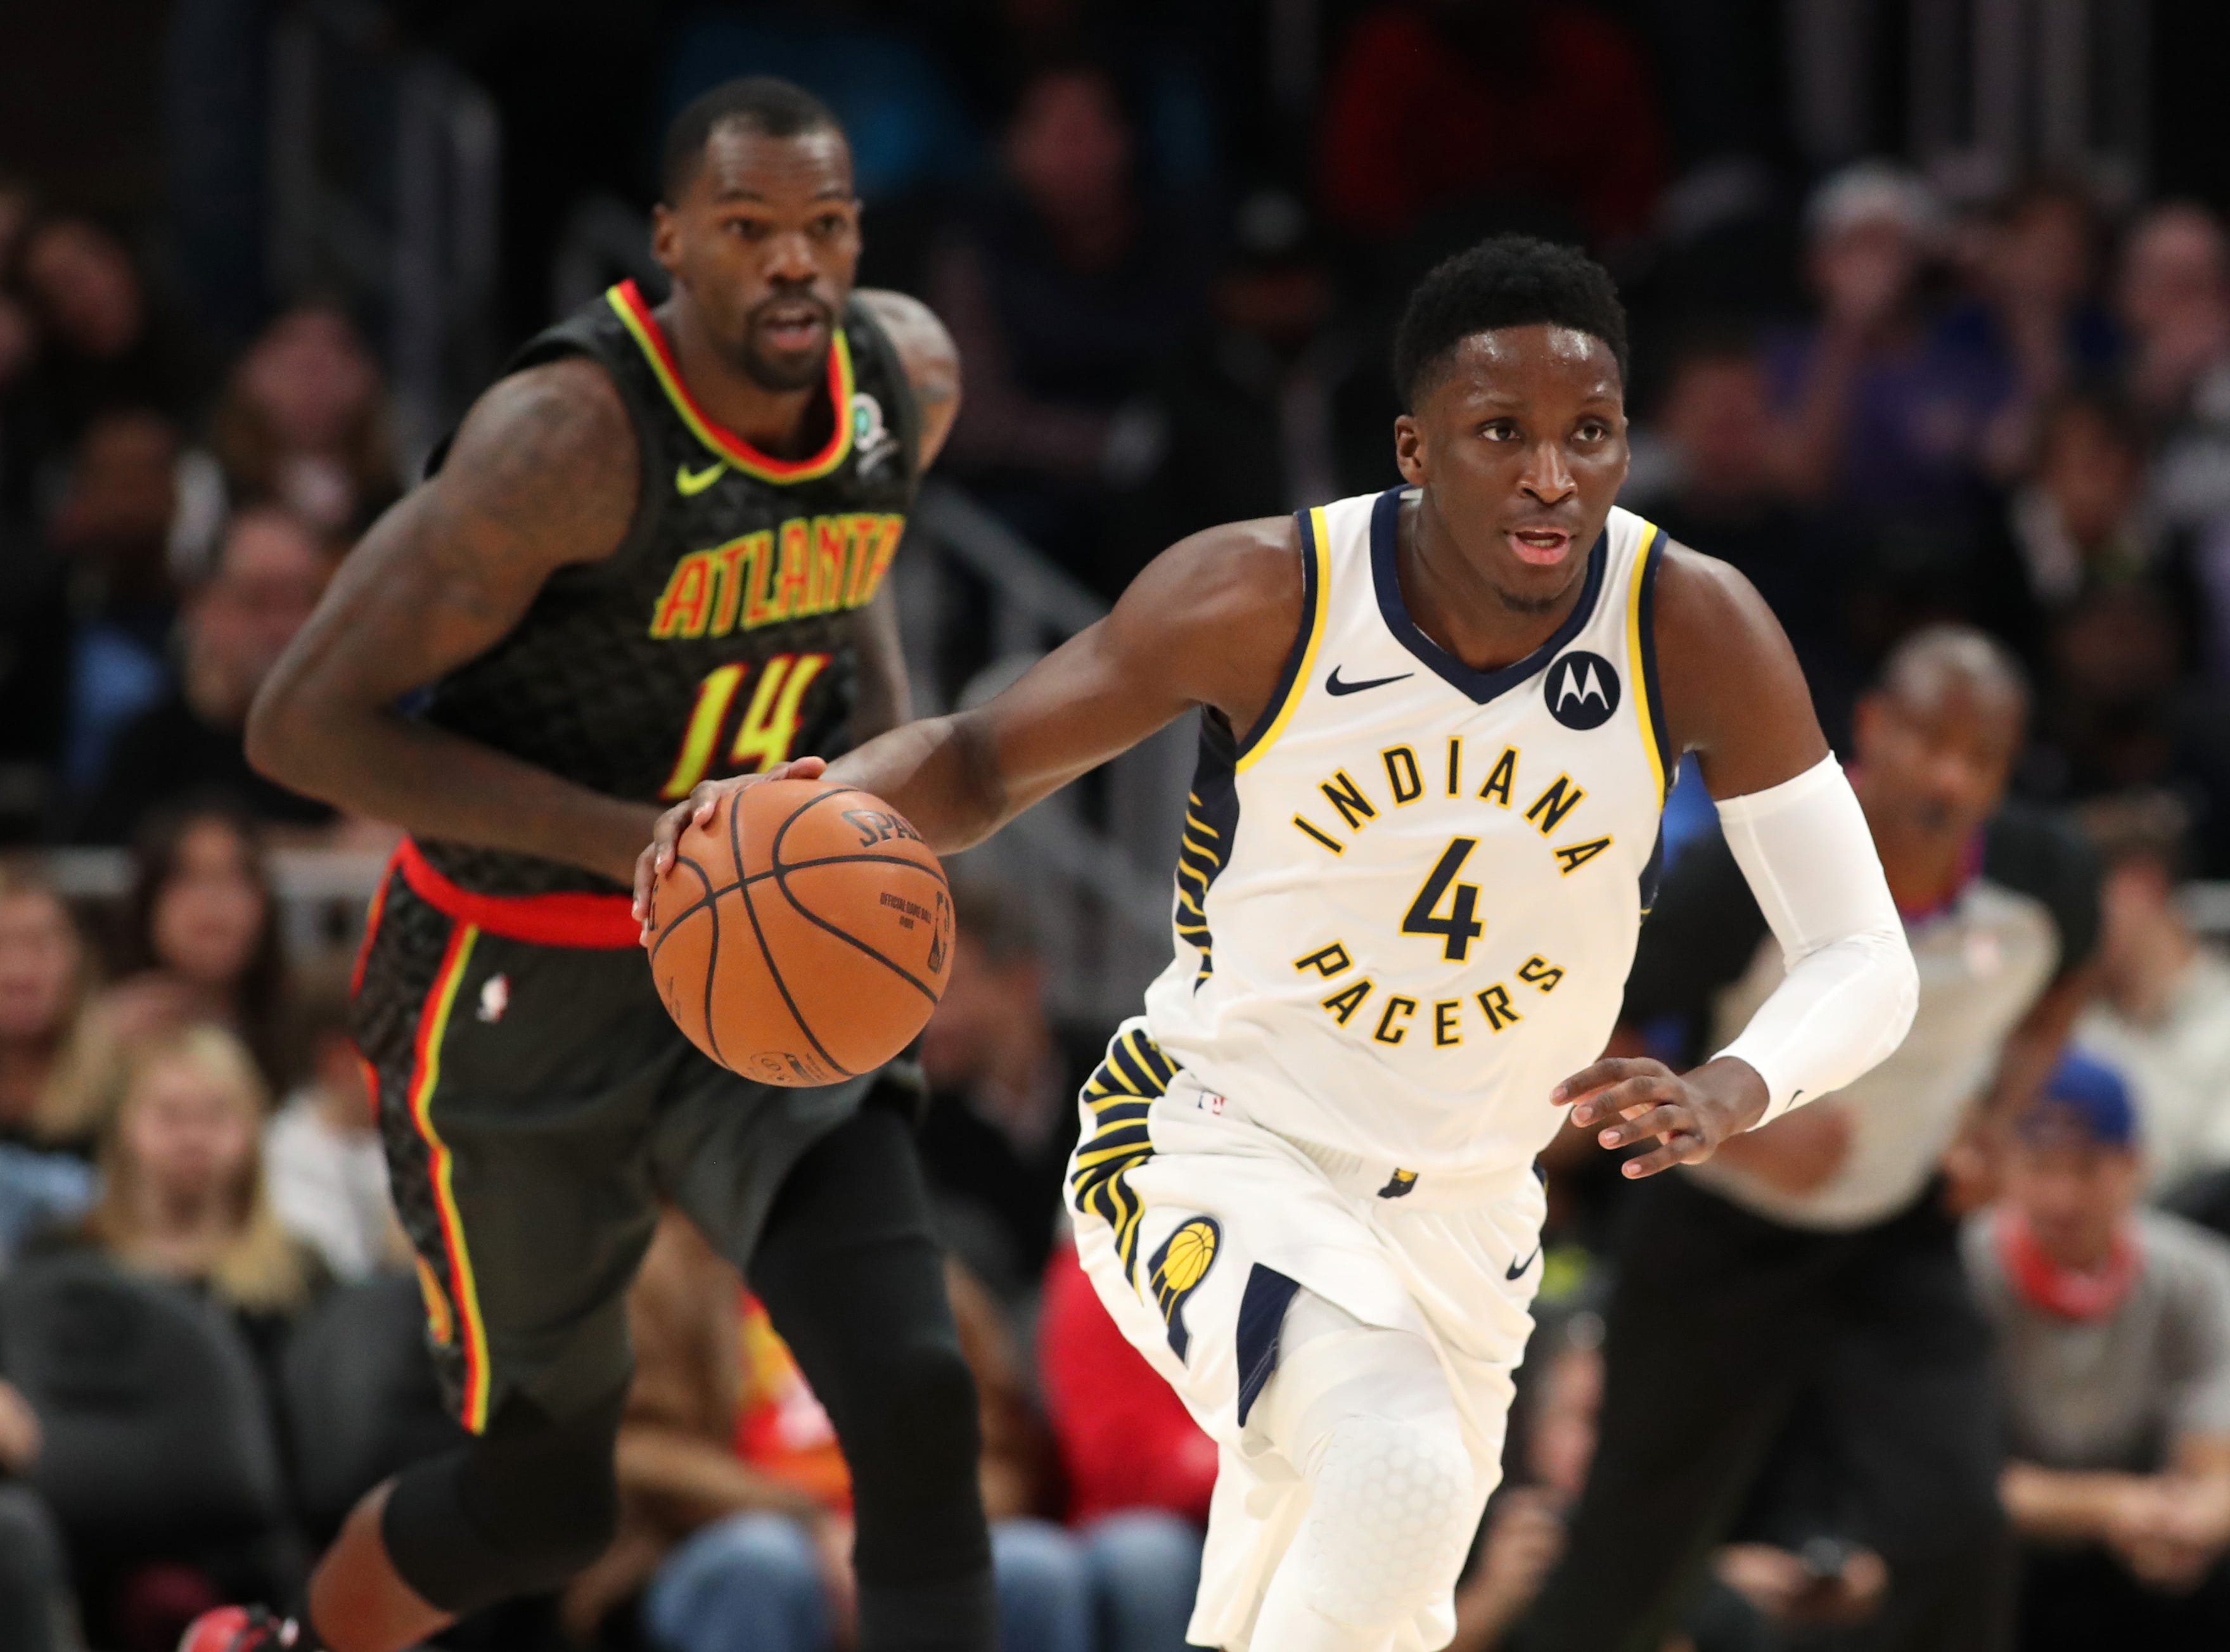 Dec 26, 2018; Atlanta, GA, USA; Indiana Pacers guard Victor Oladipo (4) pushes the ball up the court ahead of Atlanta Hawks center Dewayne Dedmon (14) in the first quarter at State Farm Arena. Mandatory Credit: Jason Getz-USA TODAY Sports